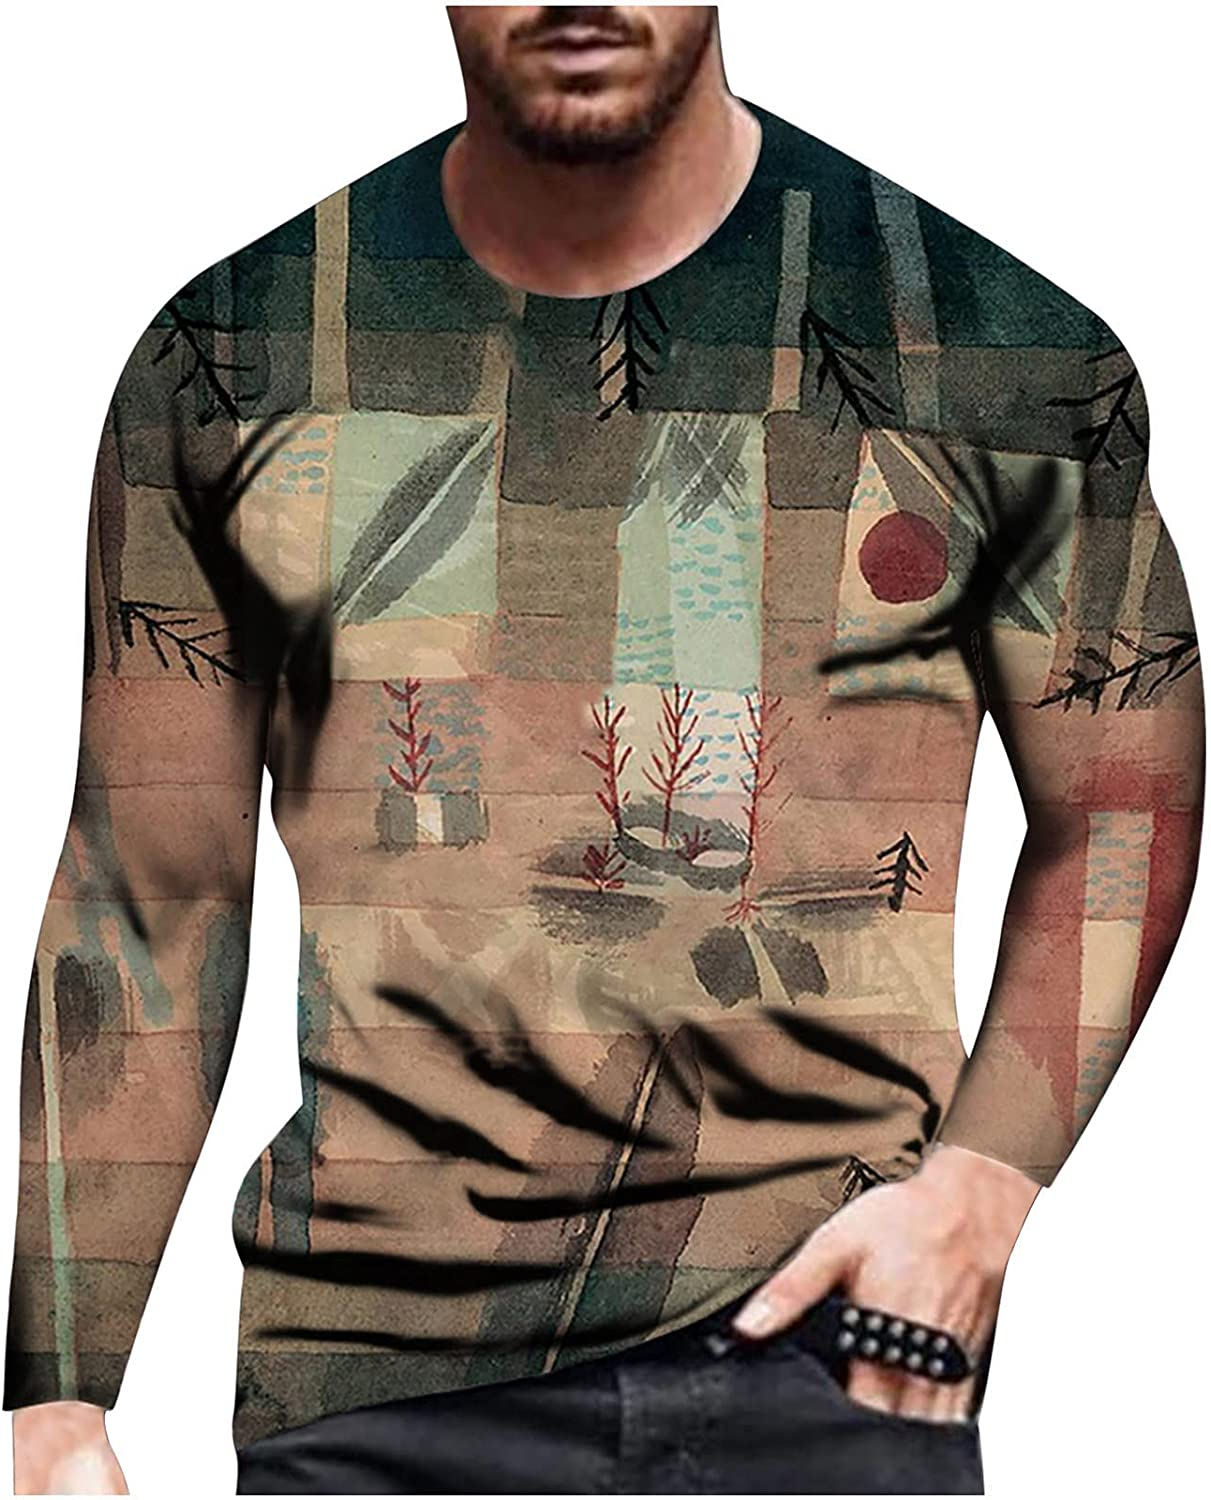 Bravetoshop 3D Pattern Printed T-Shirt for Men,Men's Novelty Colorful Graphic Long Sleeve T Shirts Street Fashion Blouse